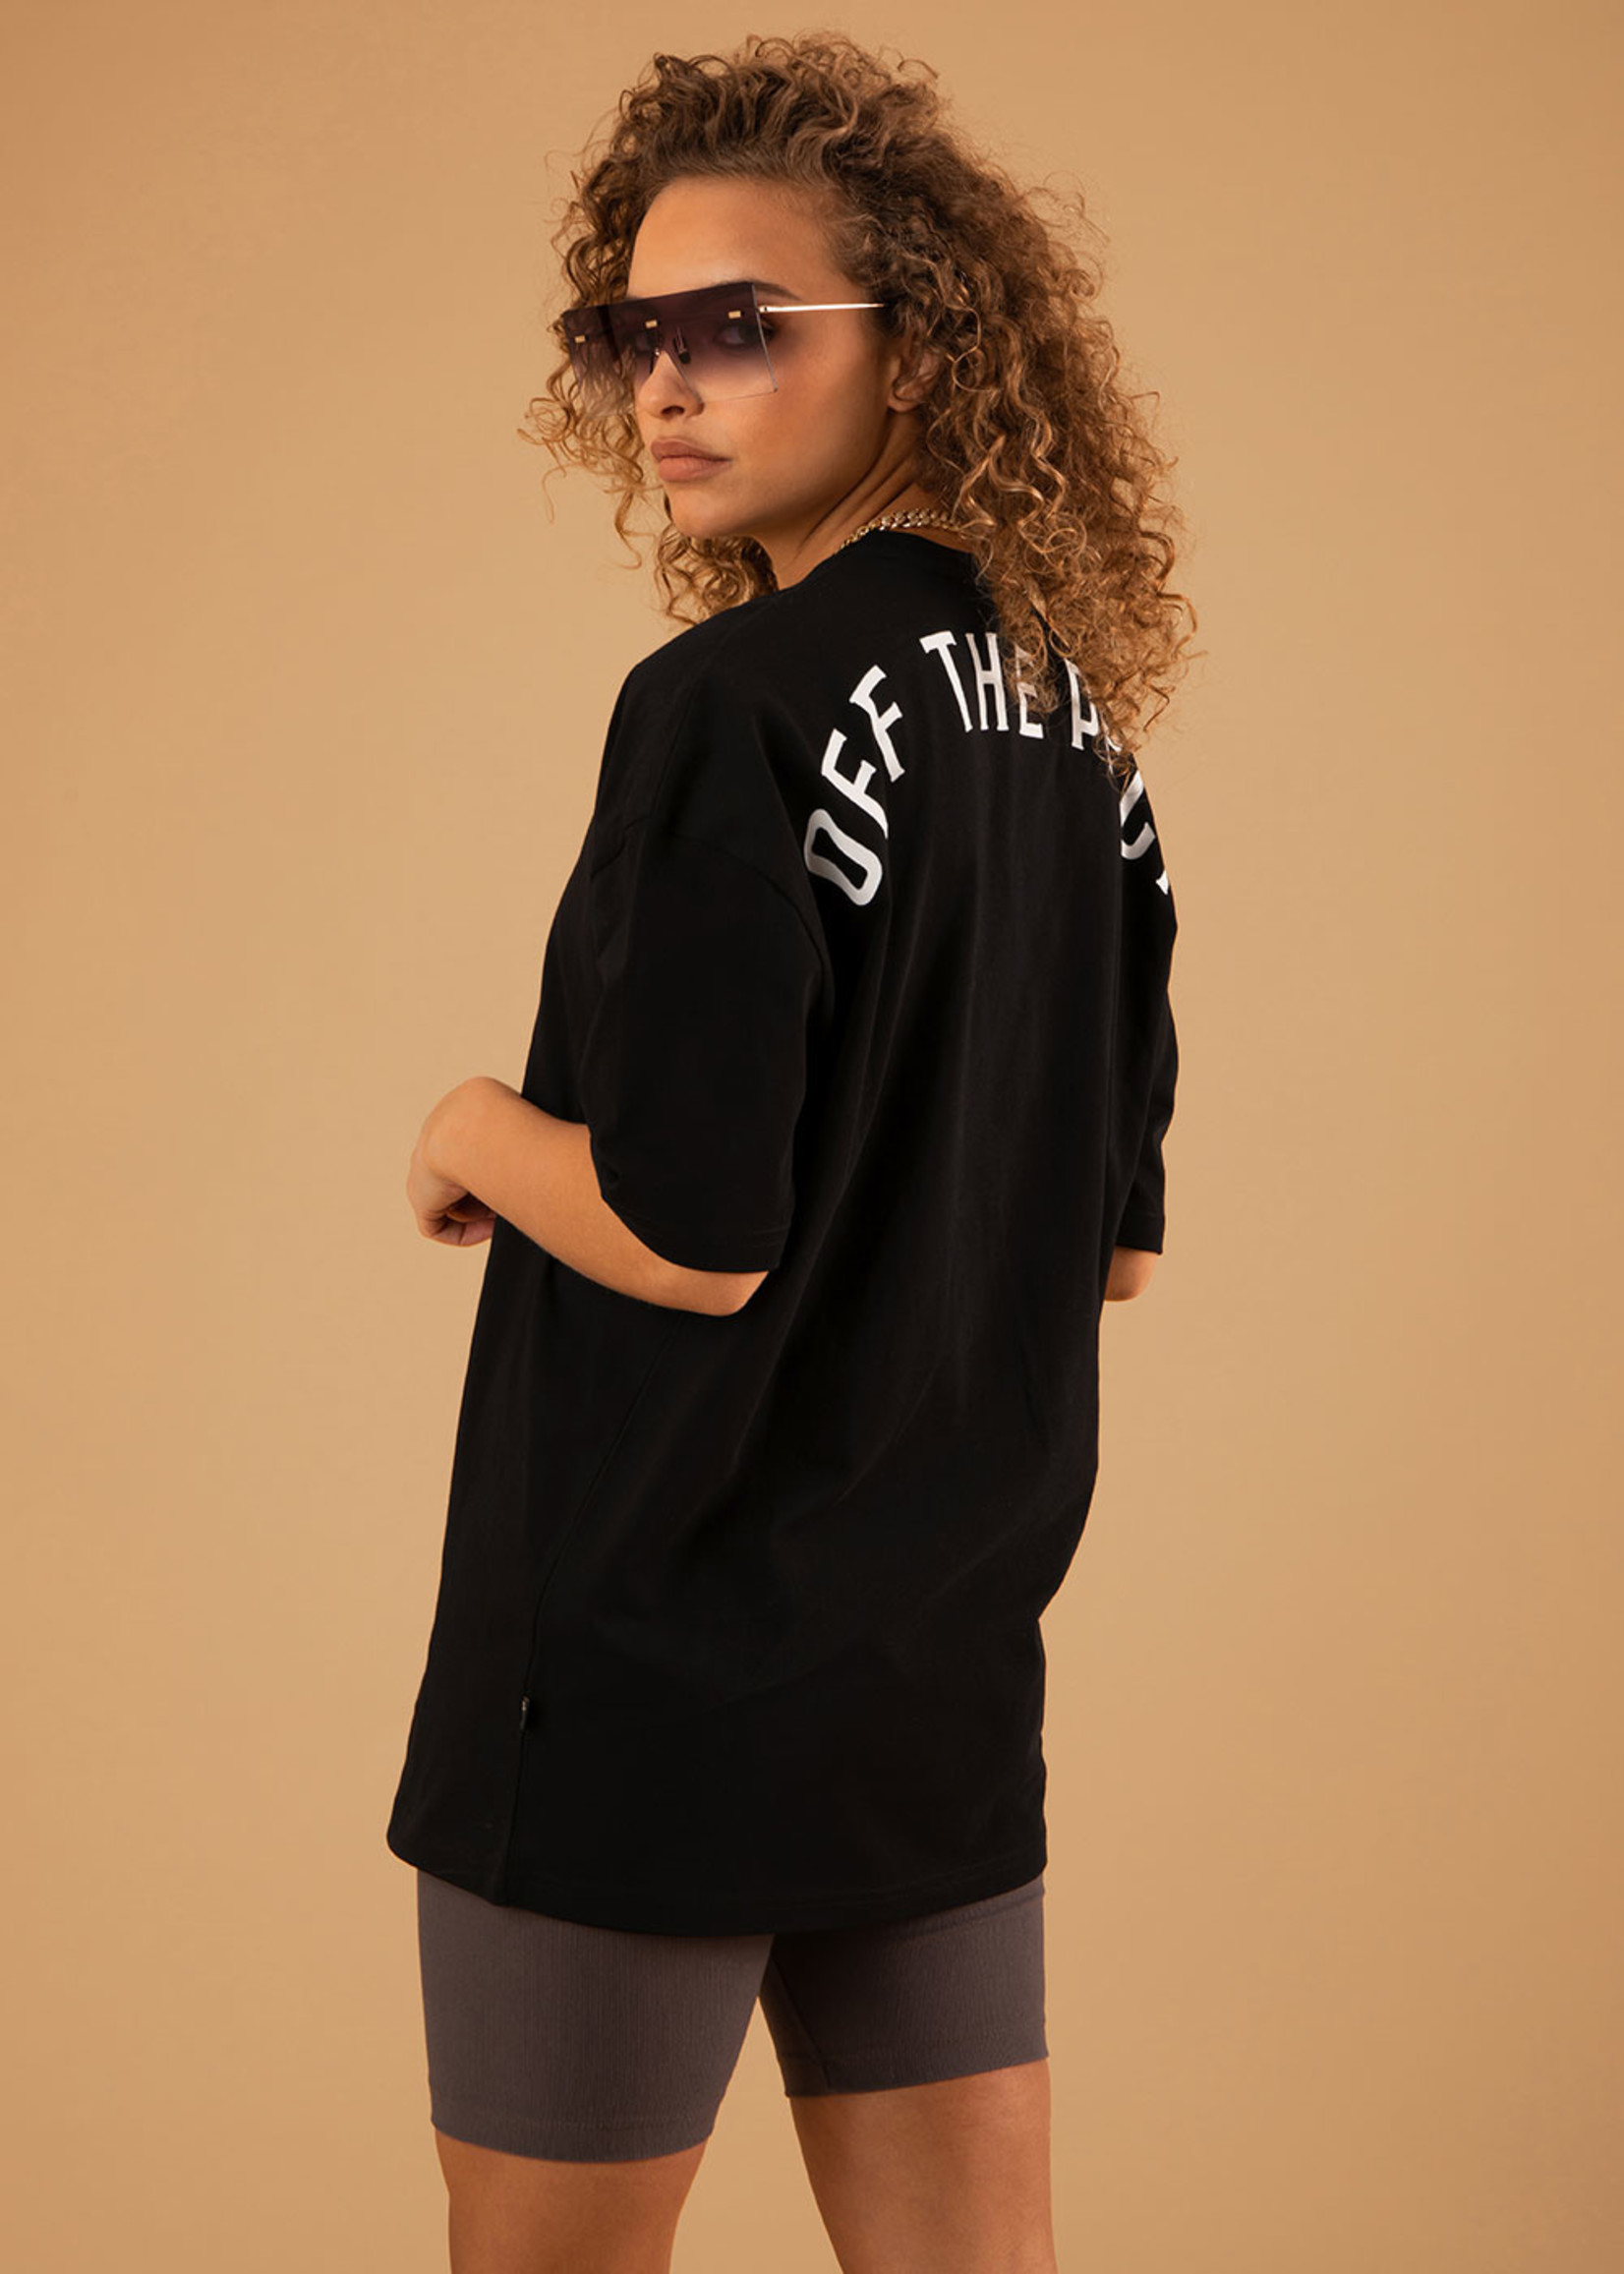 OFF THE PITCH The Pitch 2.0 Oversized Tee - Black